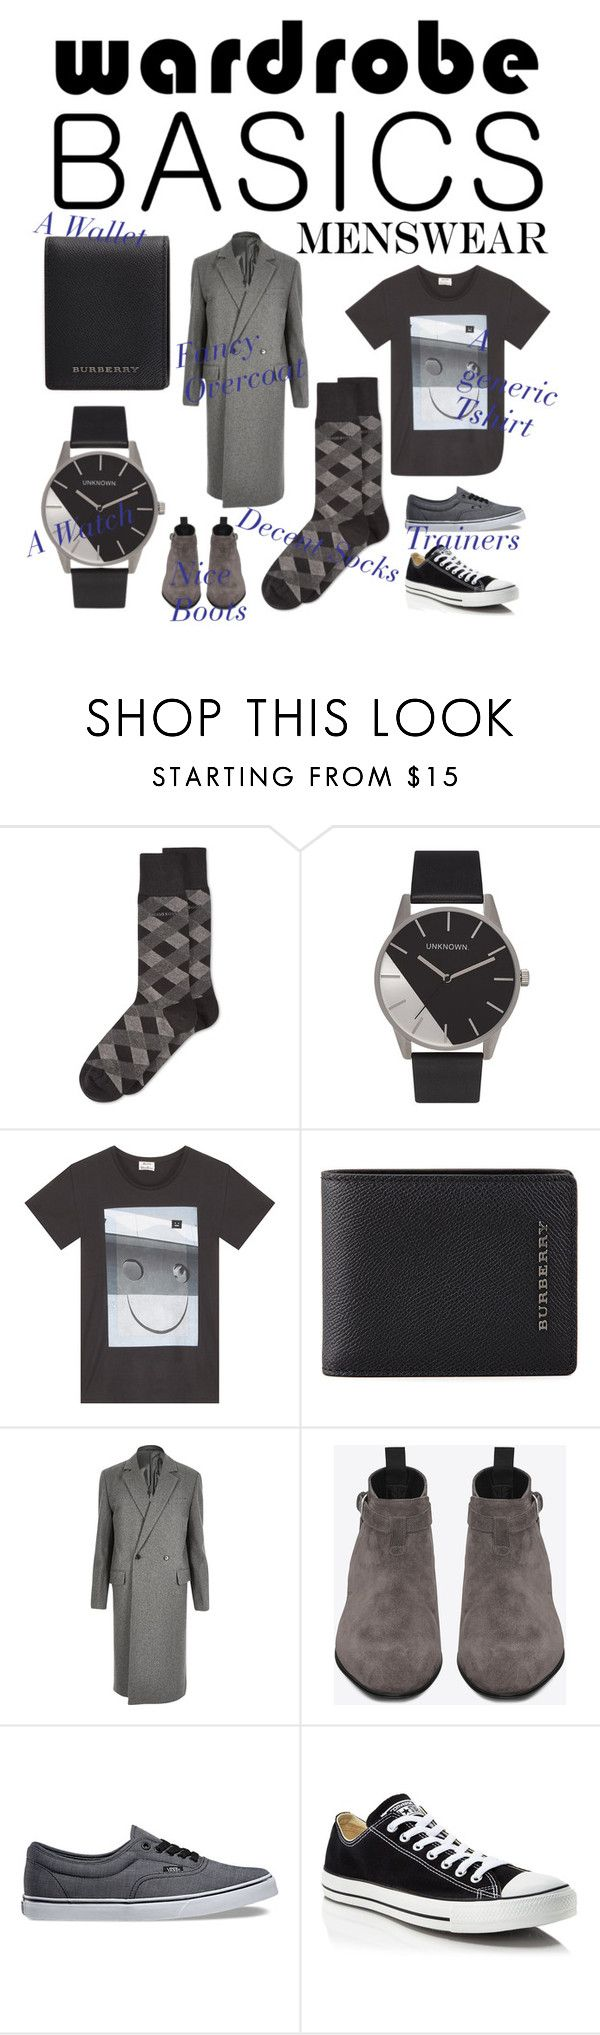 """""""Men's wardrobe basics"""" by happyino ❤ liked on Polyvore featuring HUGO, Acne Studios, Burberry, River Island, Yves Saint Laurent, Vans, Converse, mens, men and men's wear"""